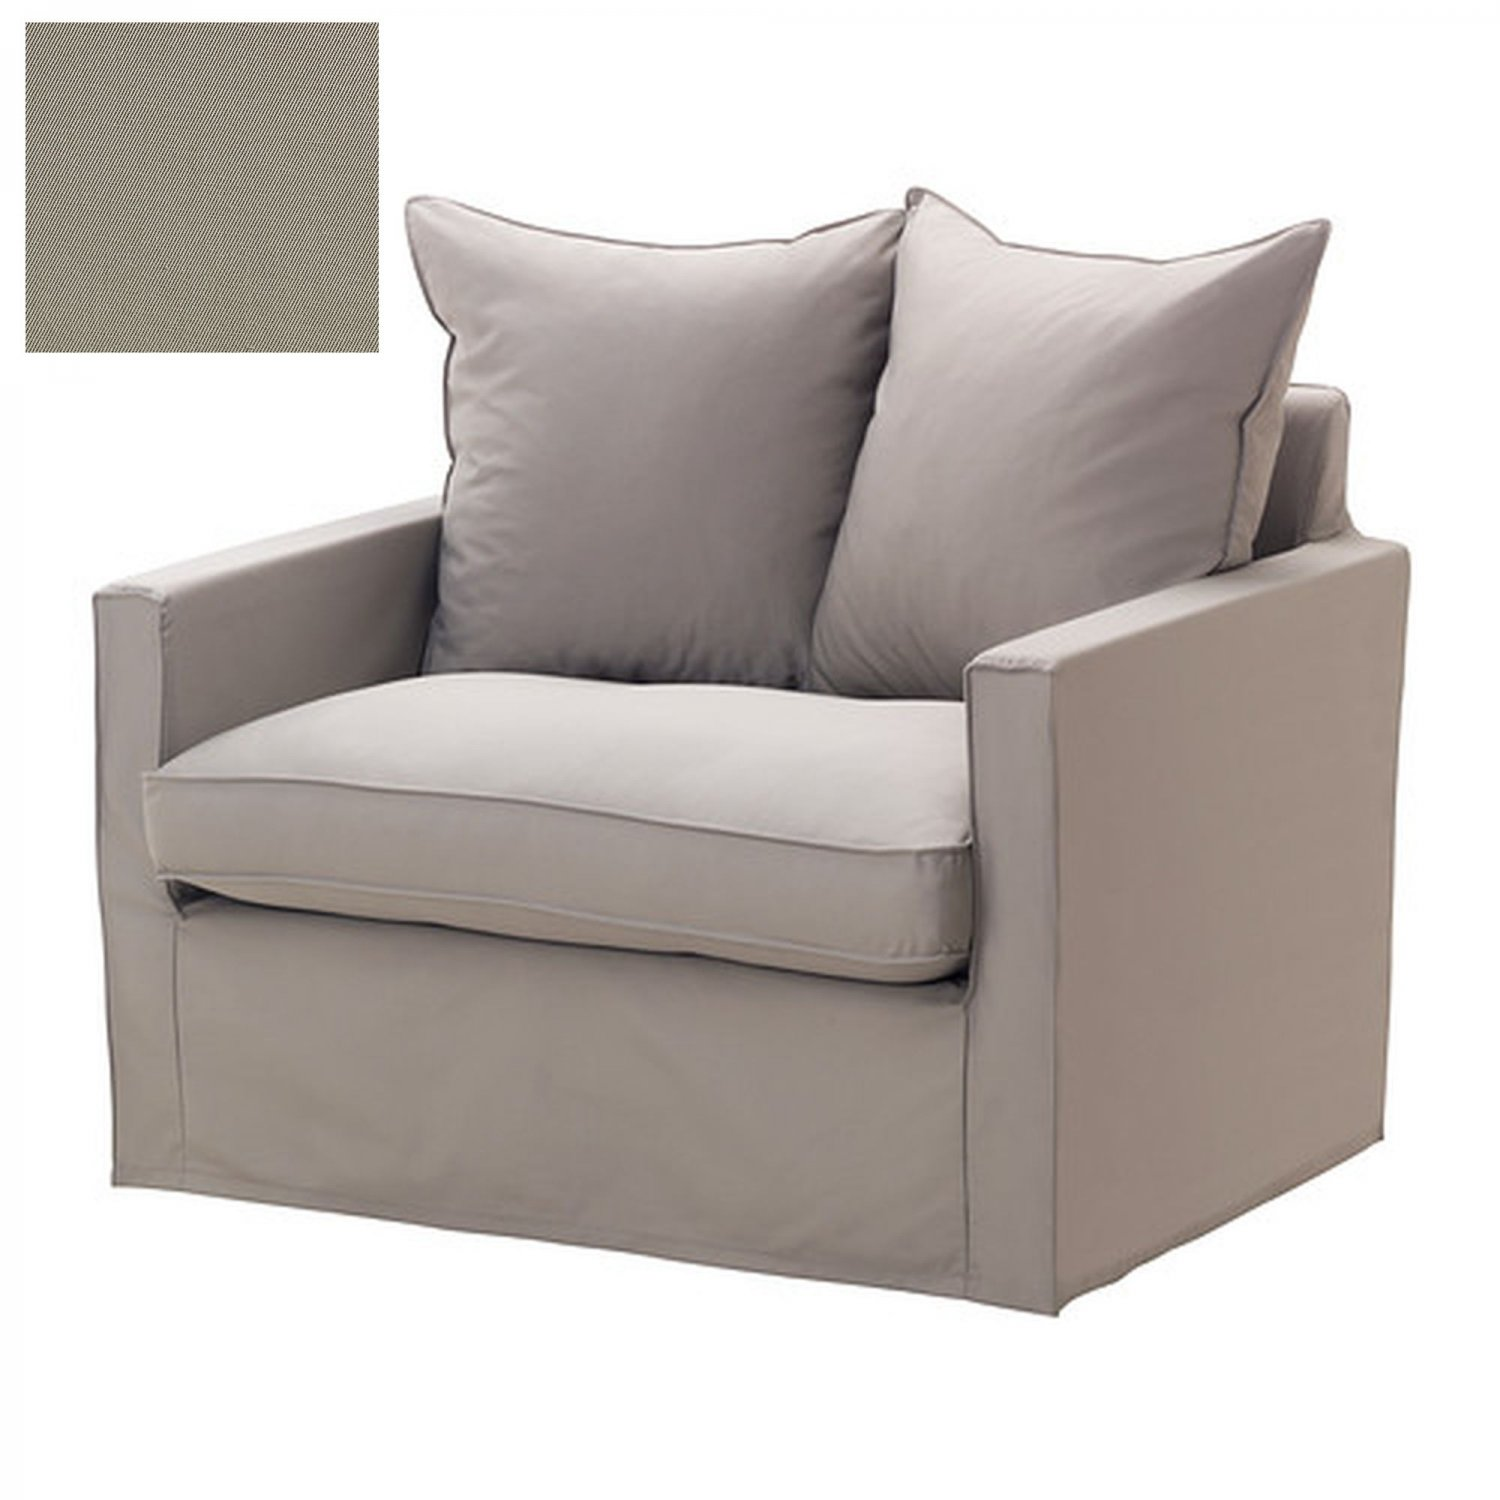 ikea reading chair wobble adhd harnosand 1 seat slipcover armchair cover